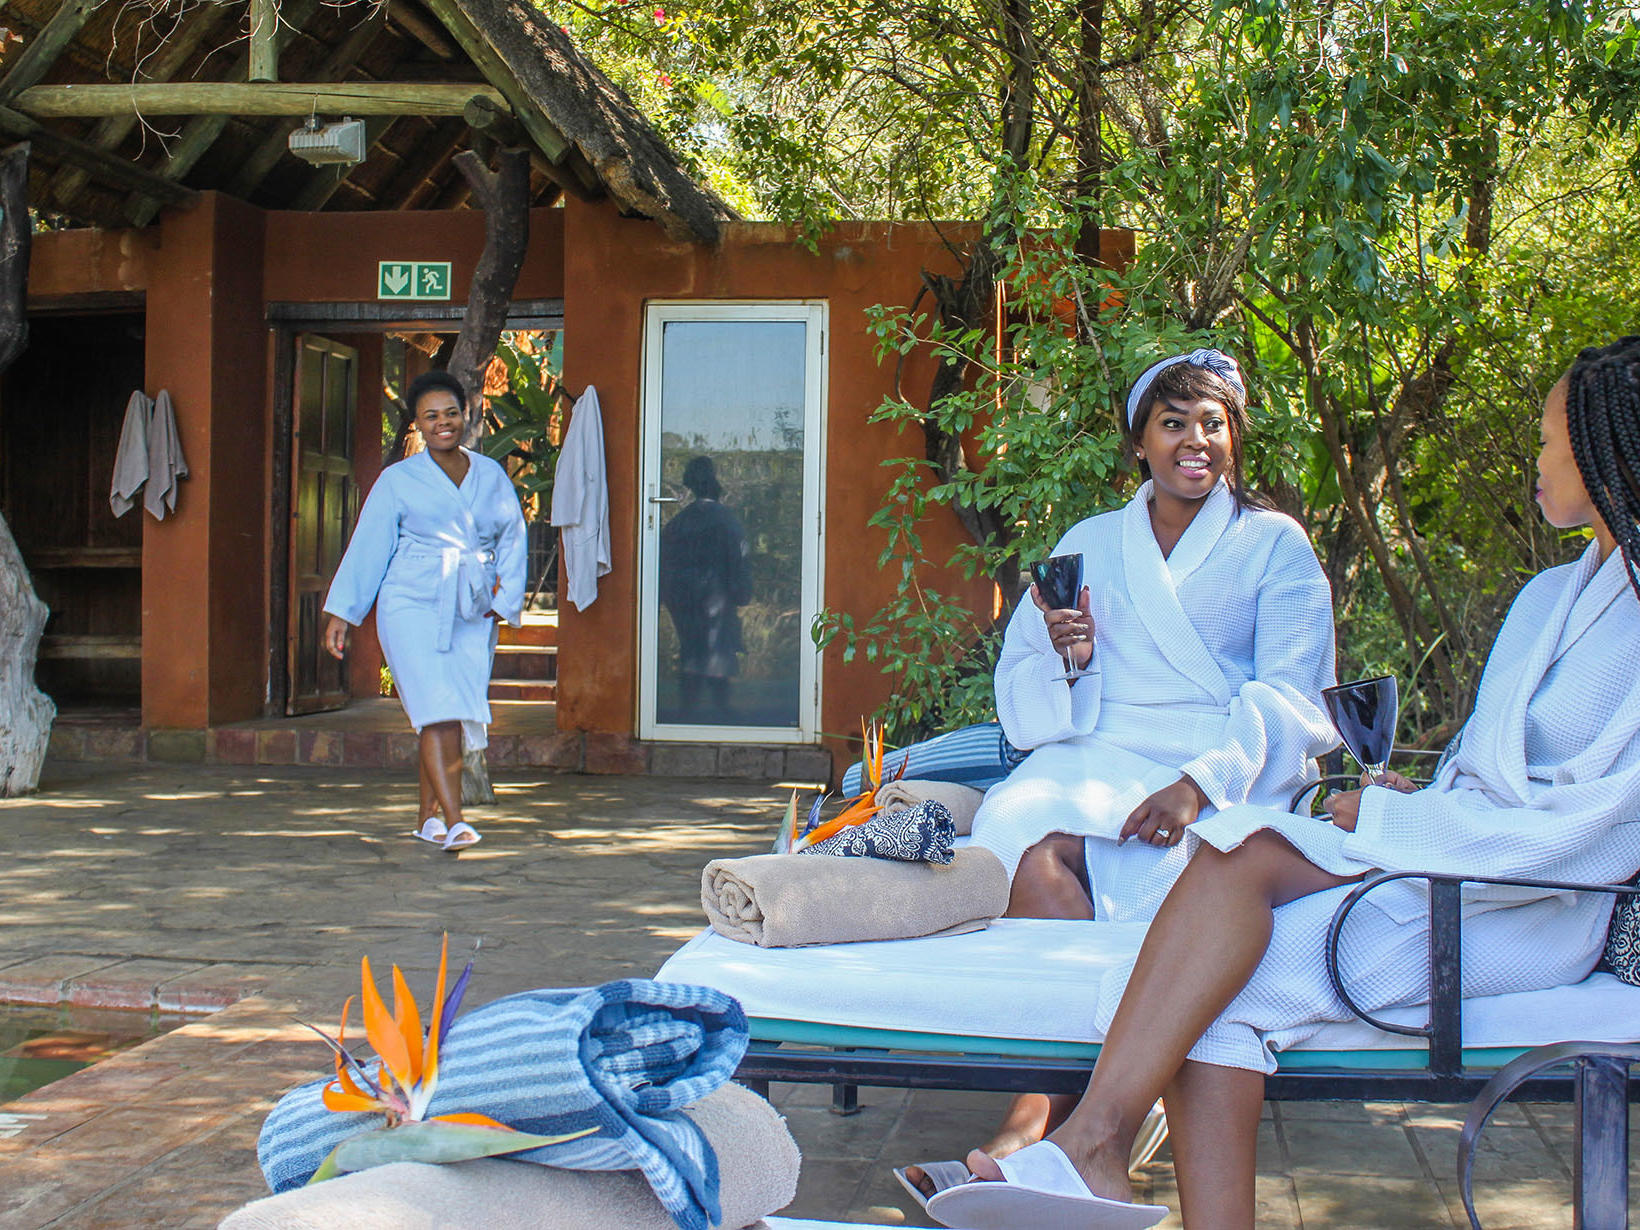 Spa with Ladies enjoying quality time